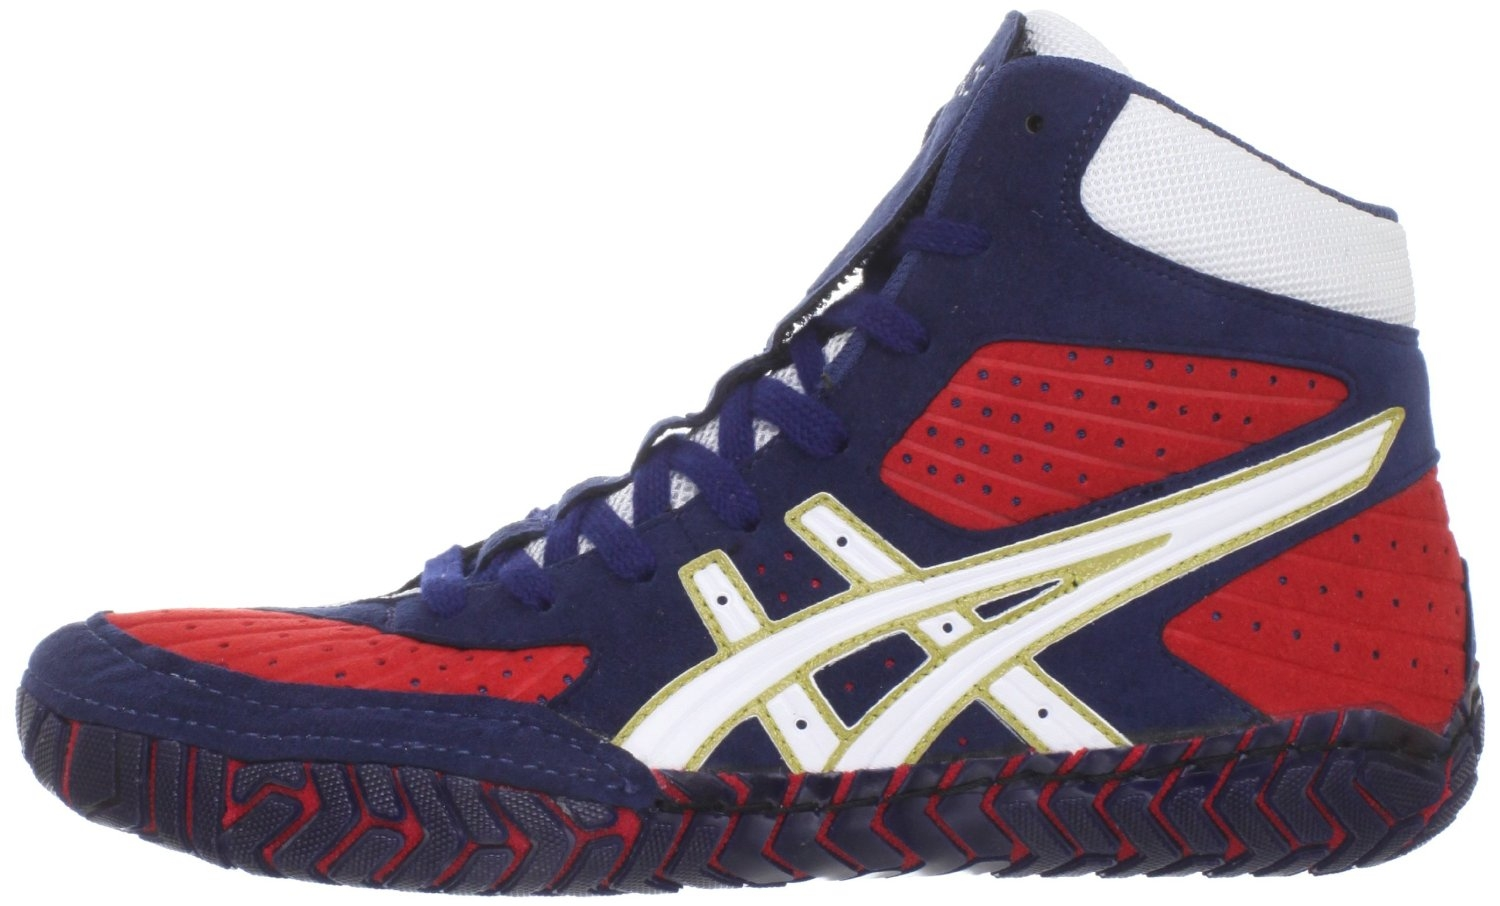 Red aggressors